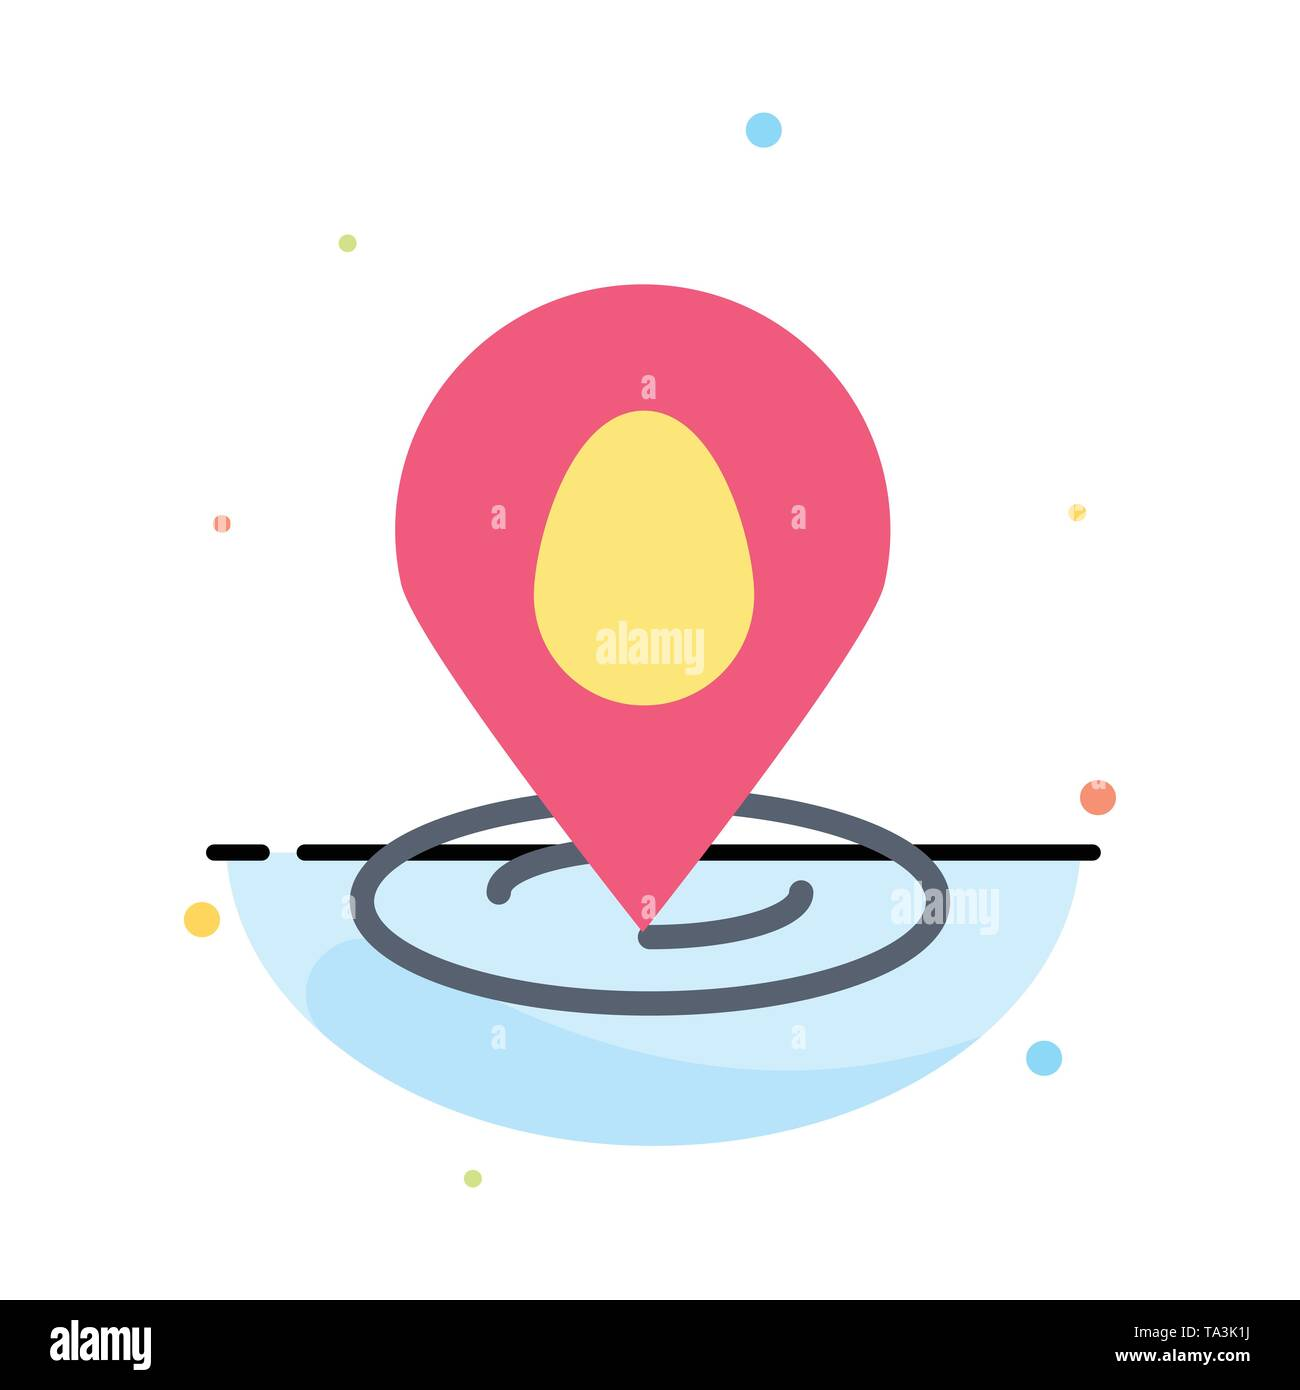 Location, Pin, Map, Easter Abstract Flat Color Icon Template - Stock Image